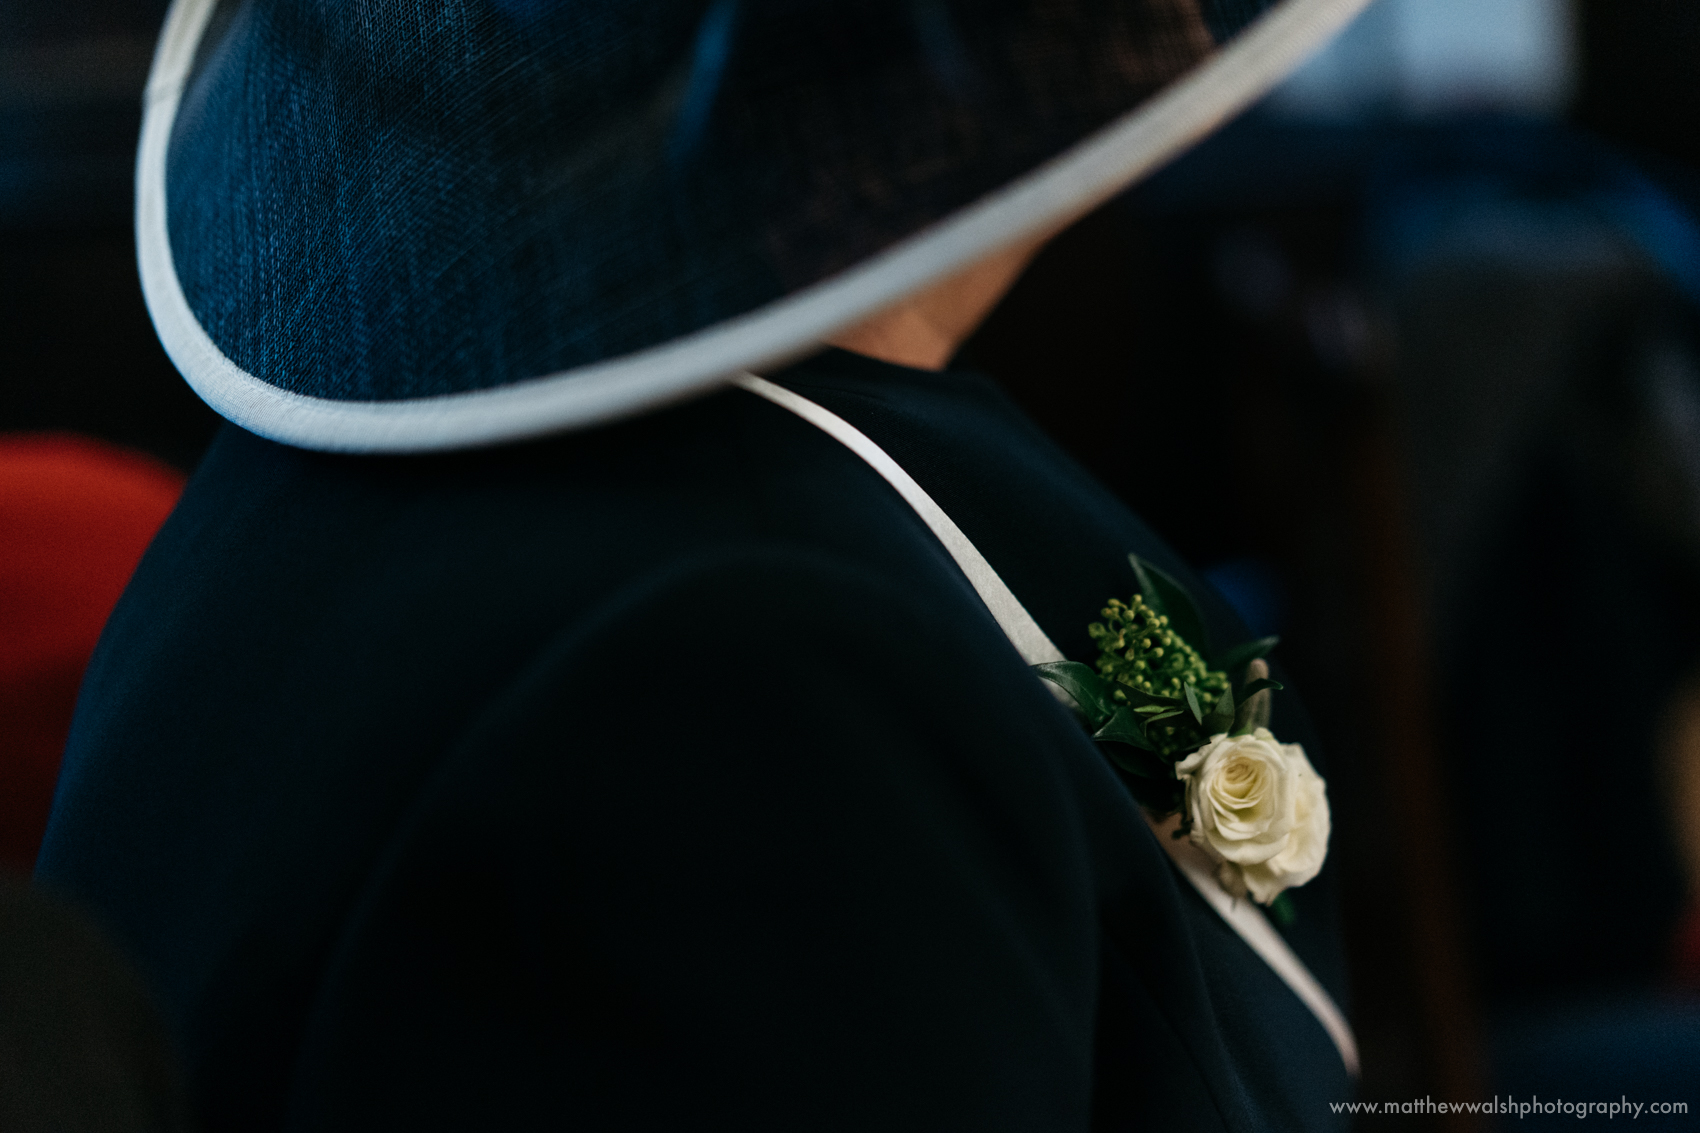 Curves and shapes with a floral detail, just a little observation of the mother of the brides hat